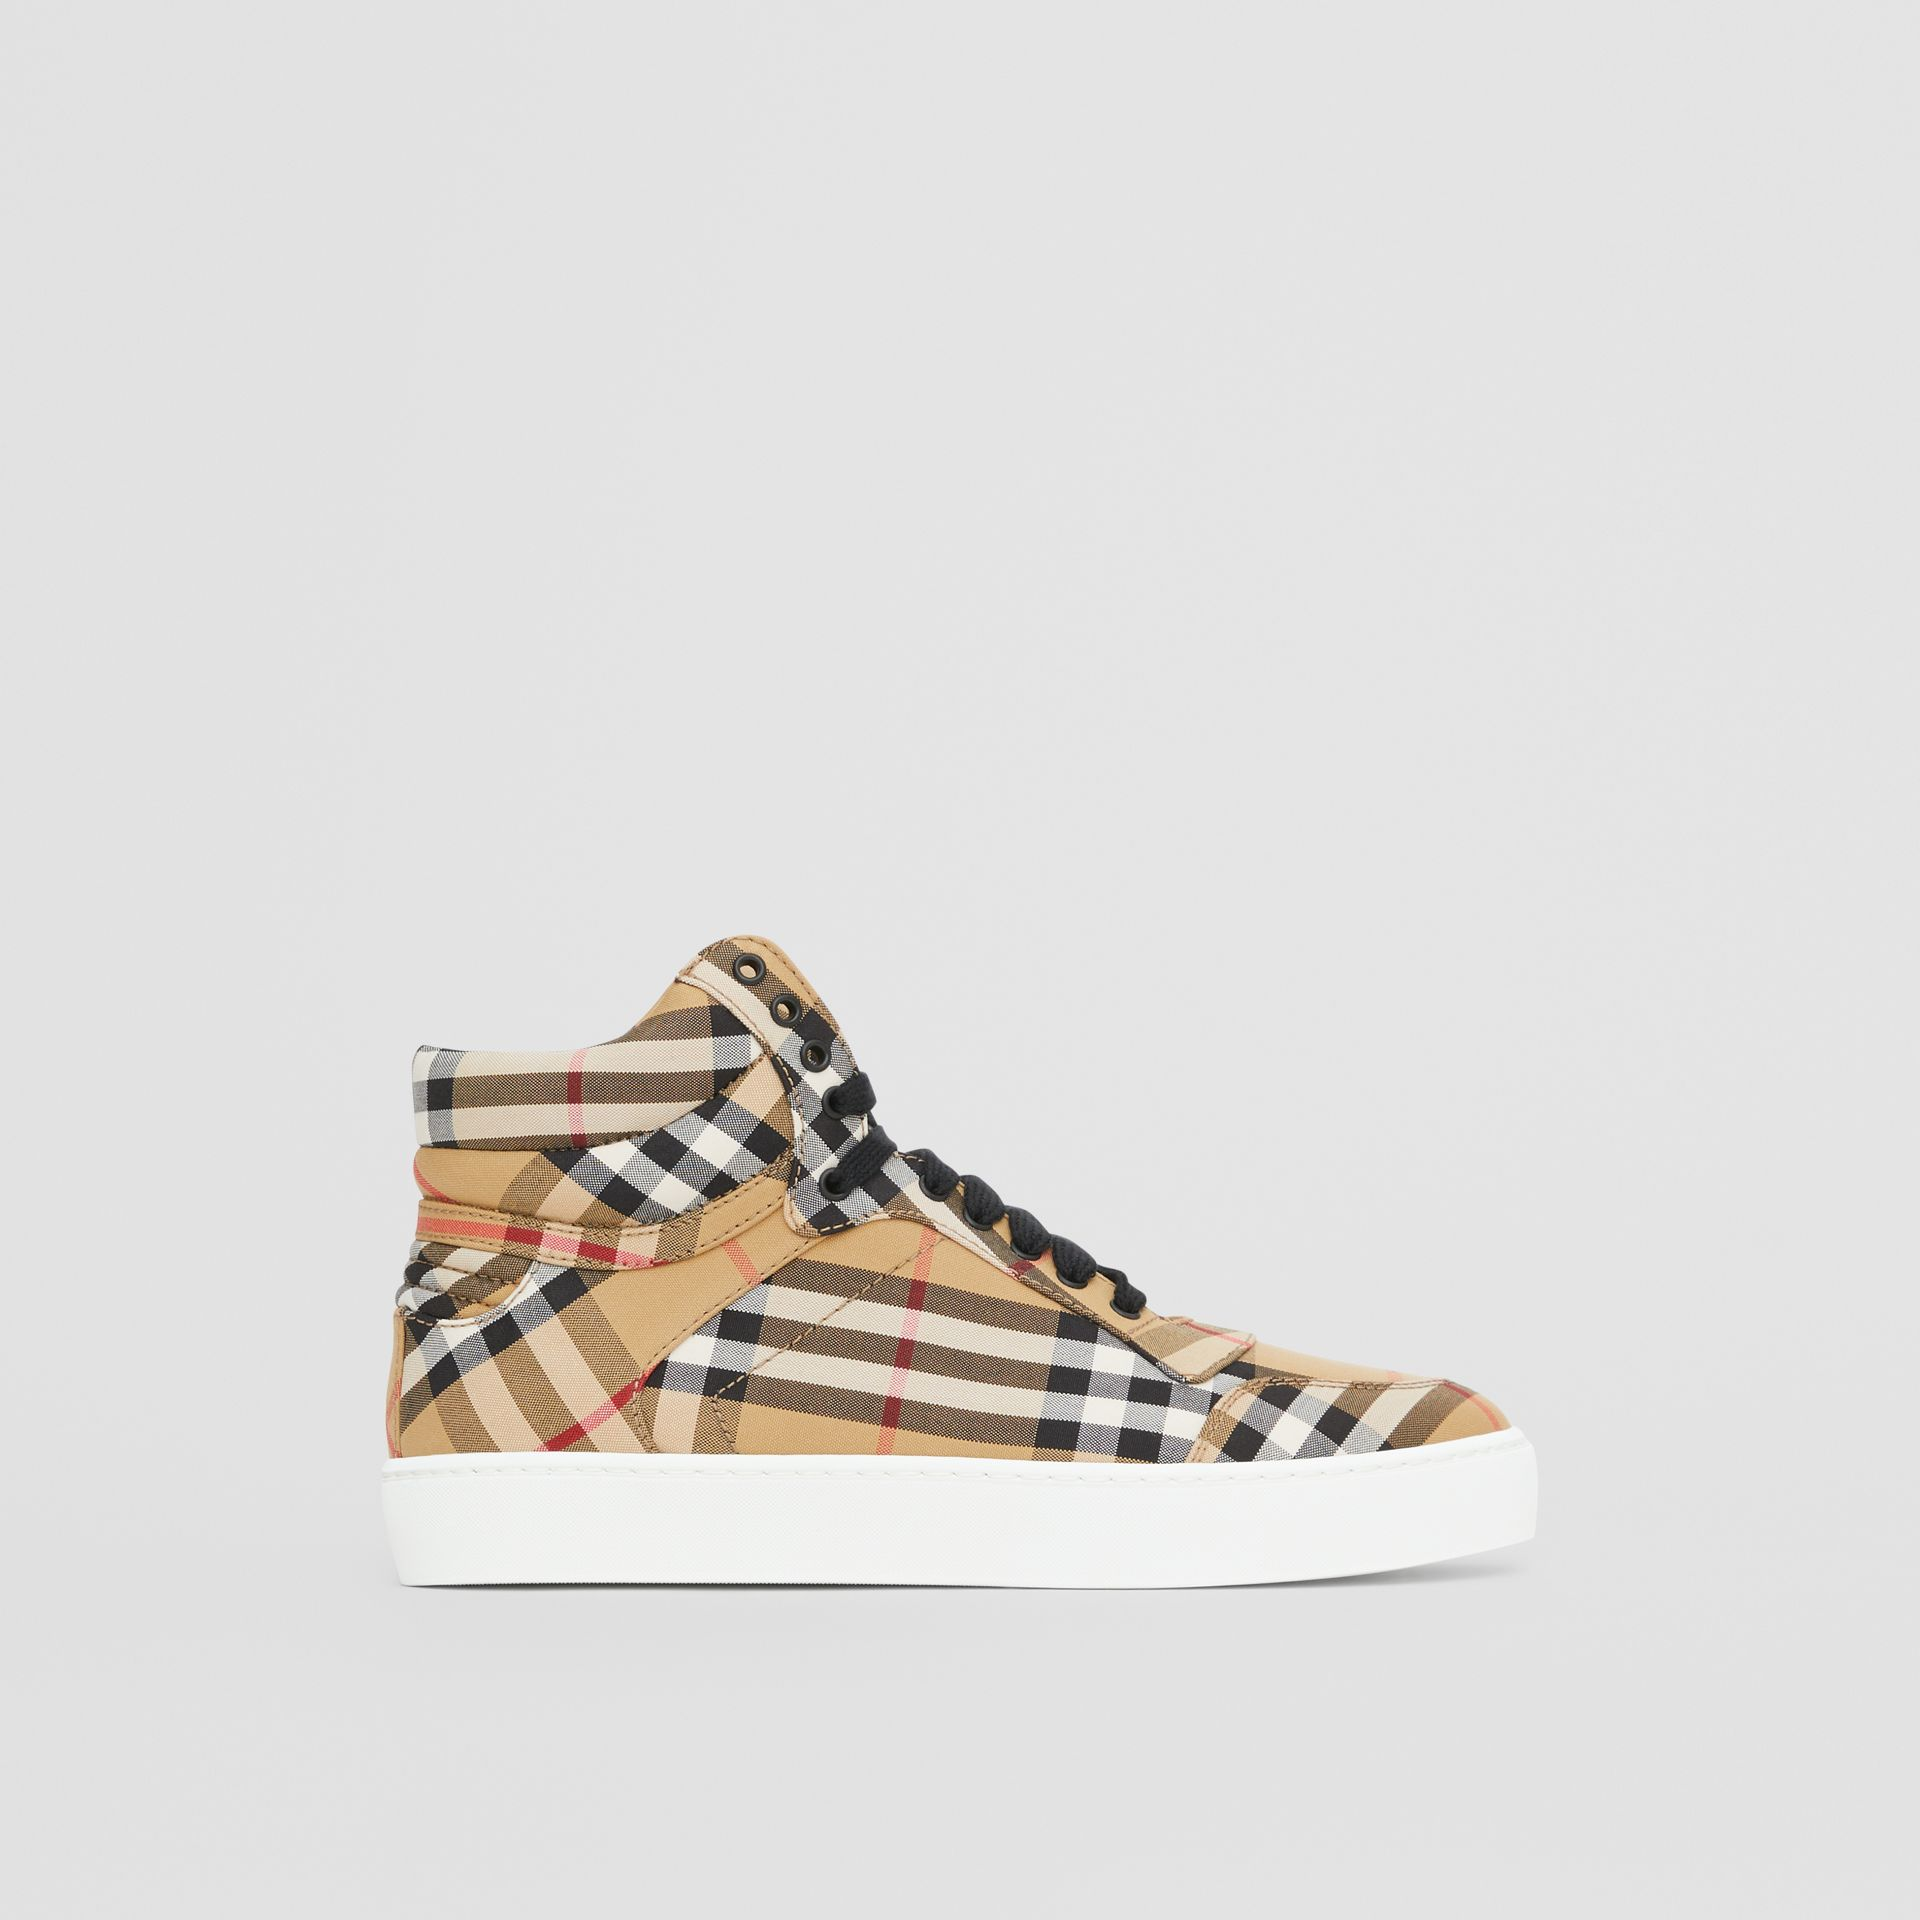 Vintage Check Cotton High-top Sneakers in Antique Yellow - Women | Burberry - gallery image 4